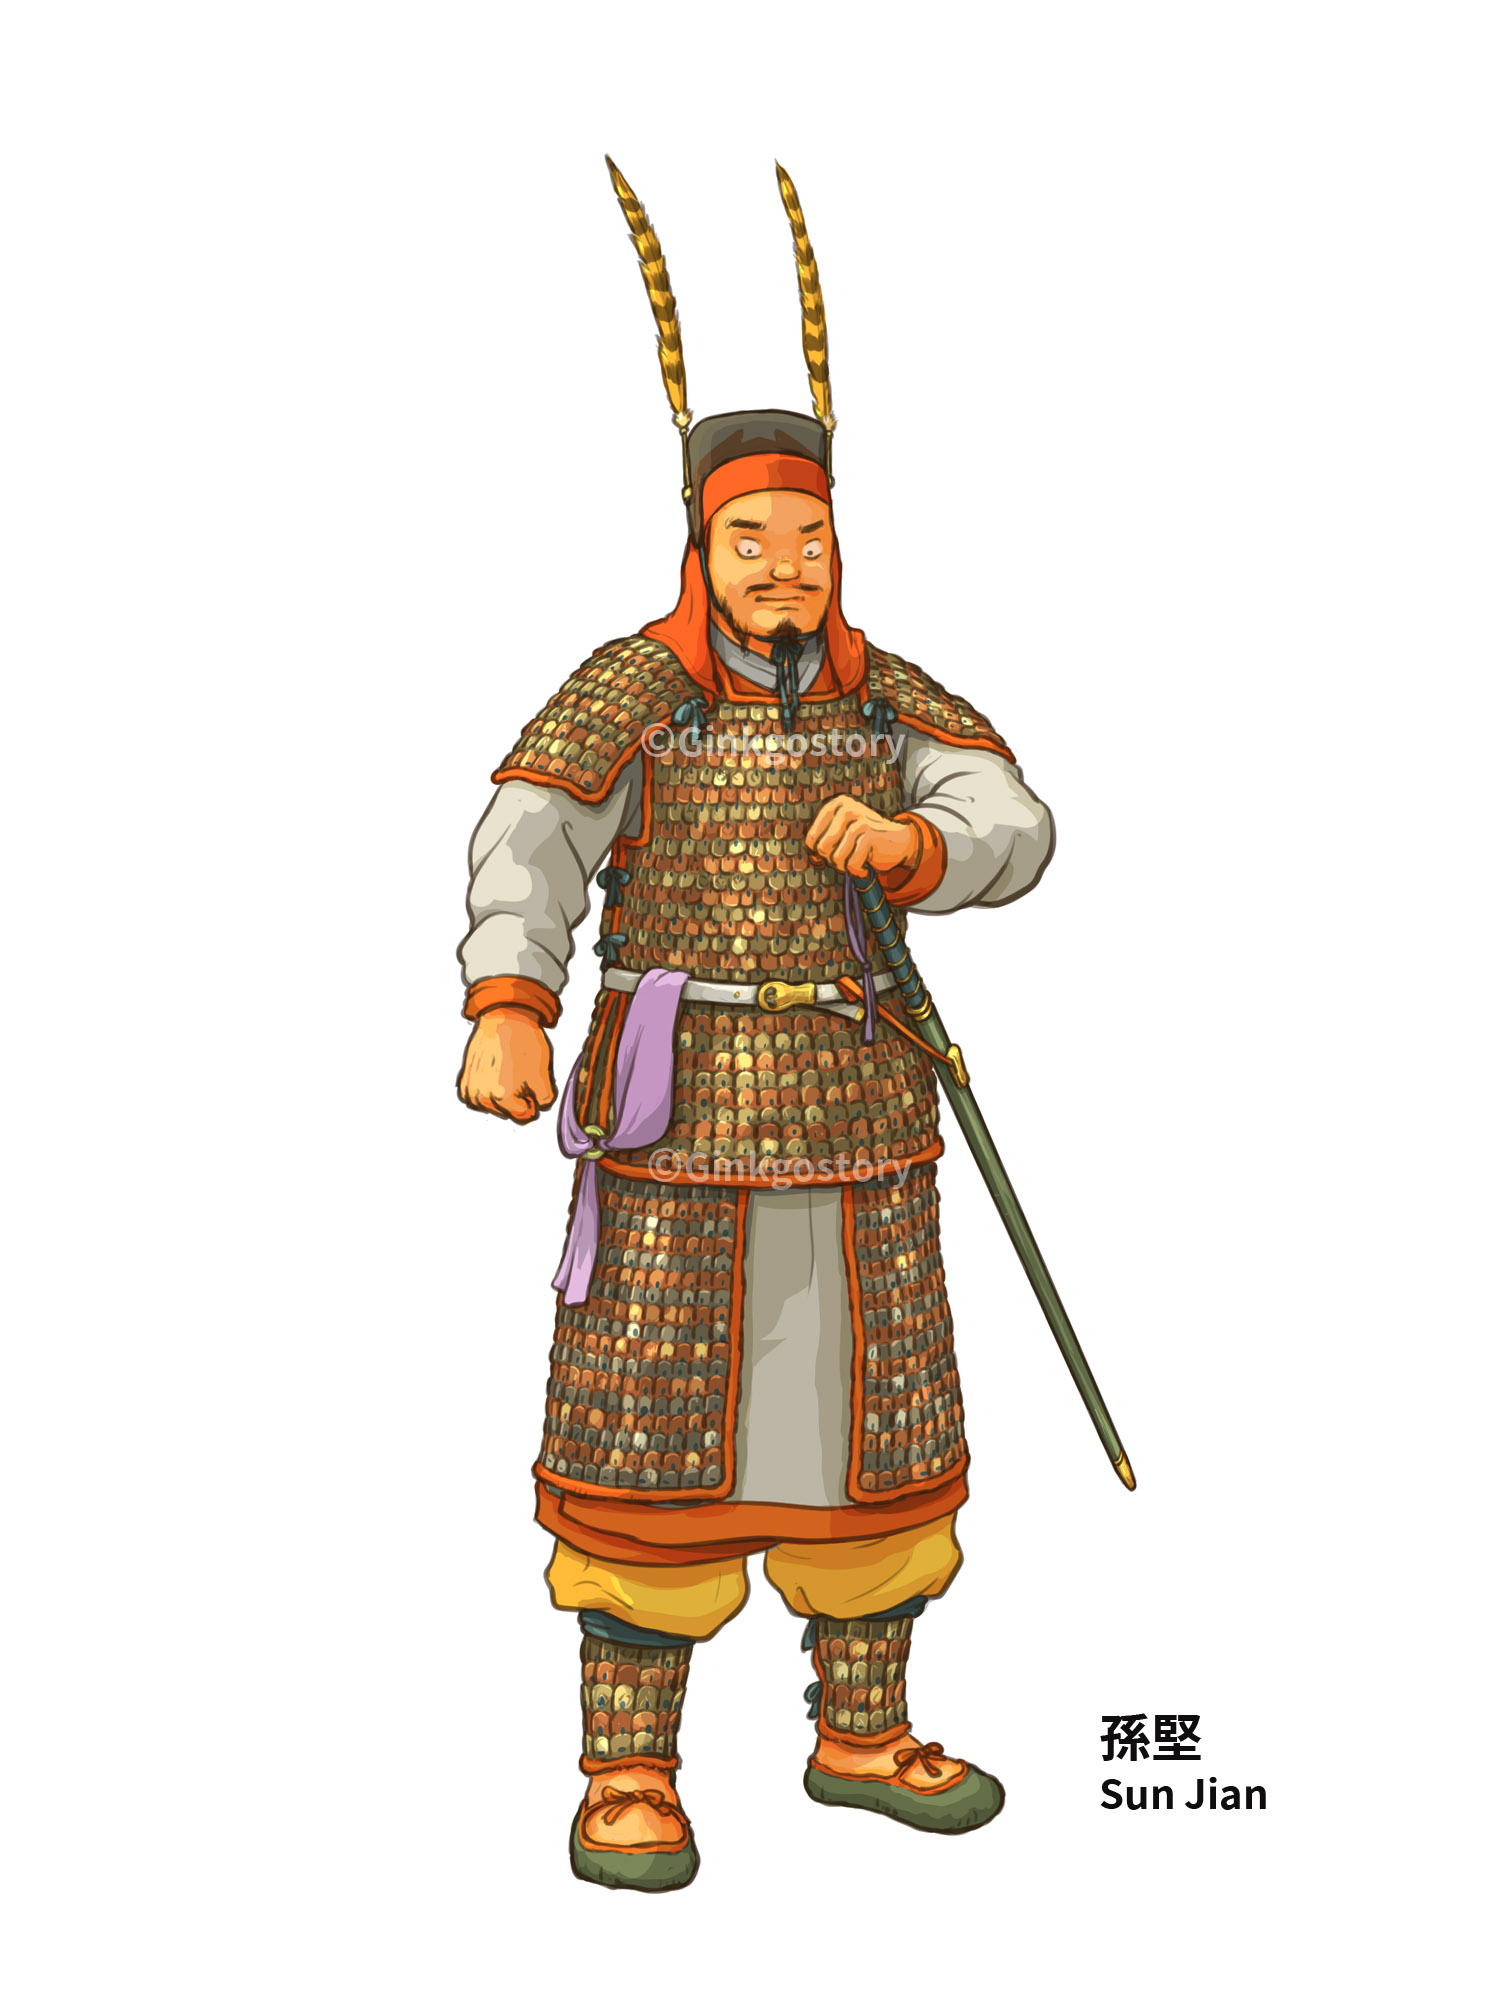 Three Kingdoms: Sun Jian